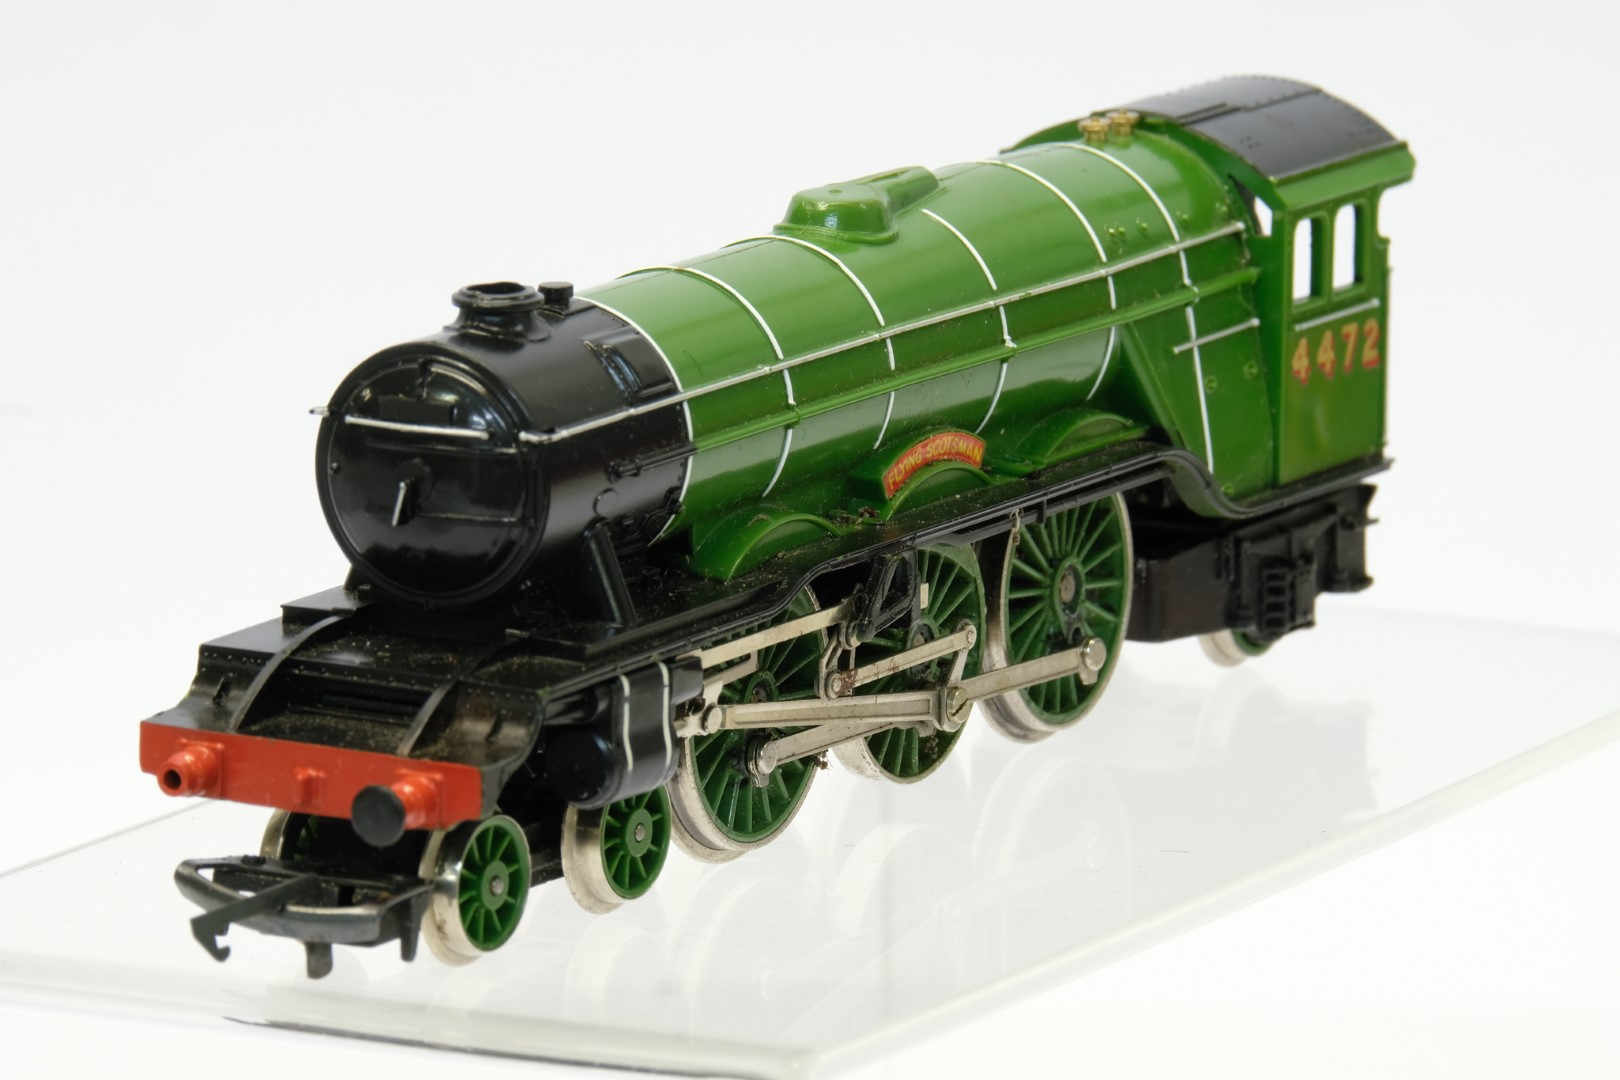 Hornby A1 Class 4-6-2 Steam Locomotive Lner 4472 Flying Scotsman - No Box | No Tender - Image 2 of 3